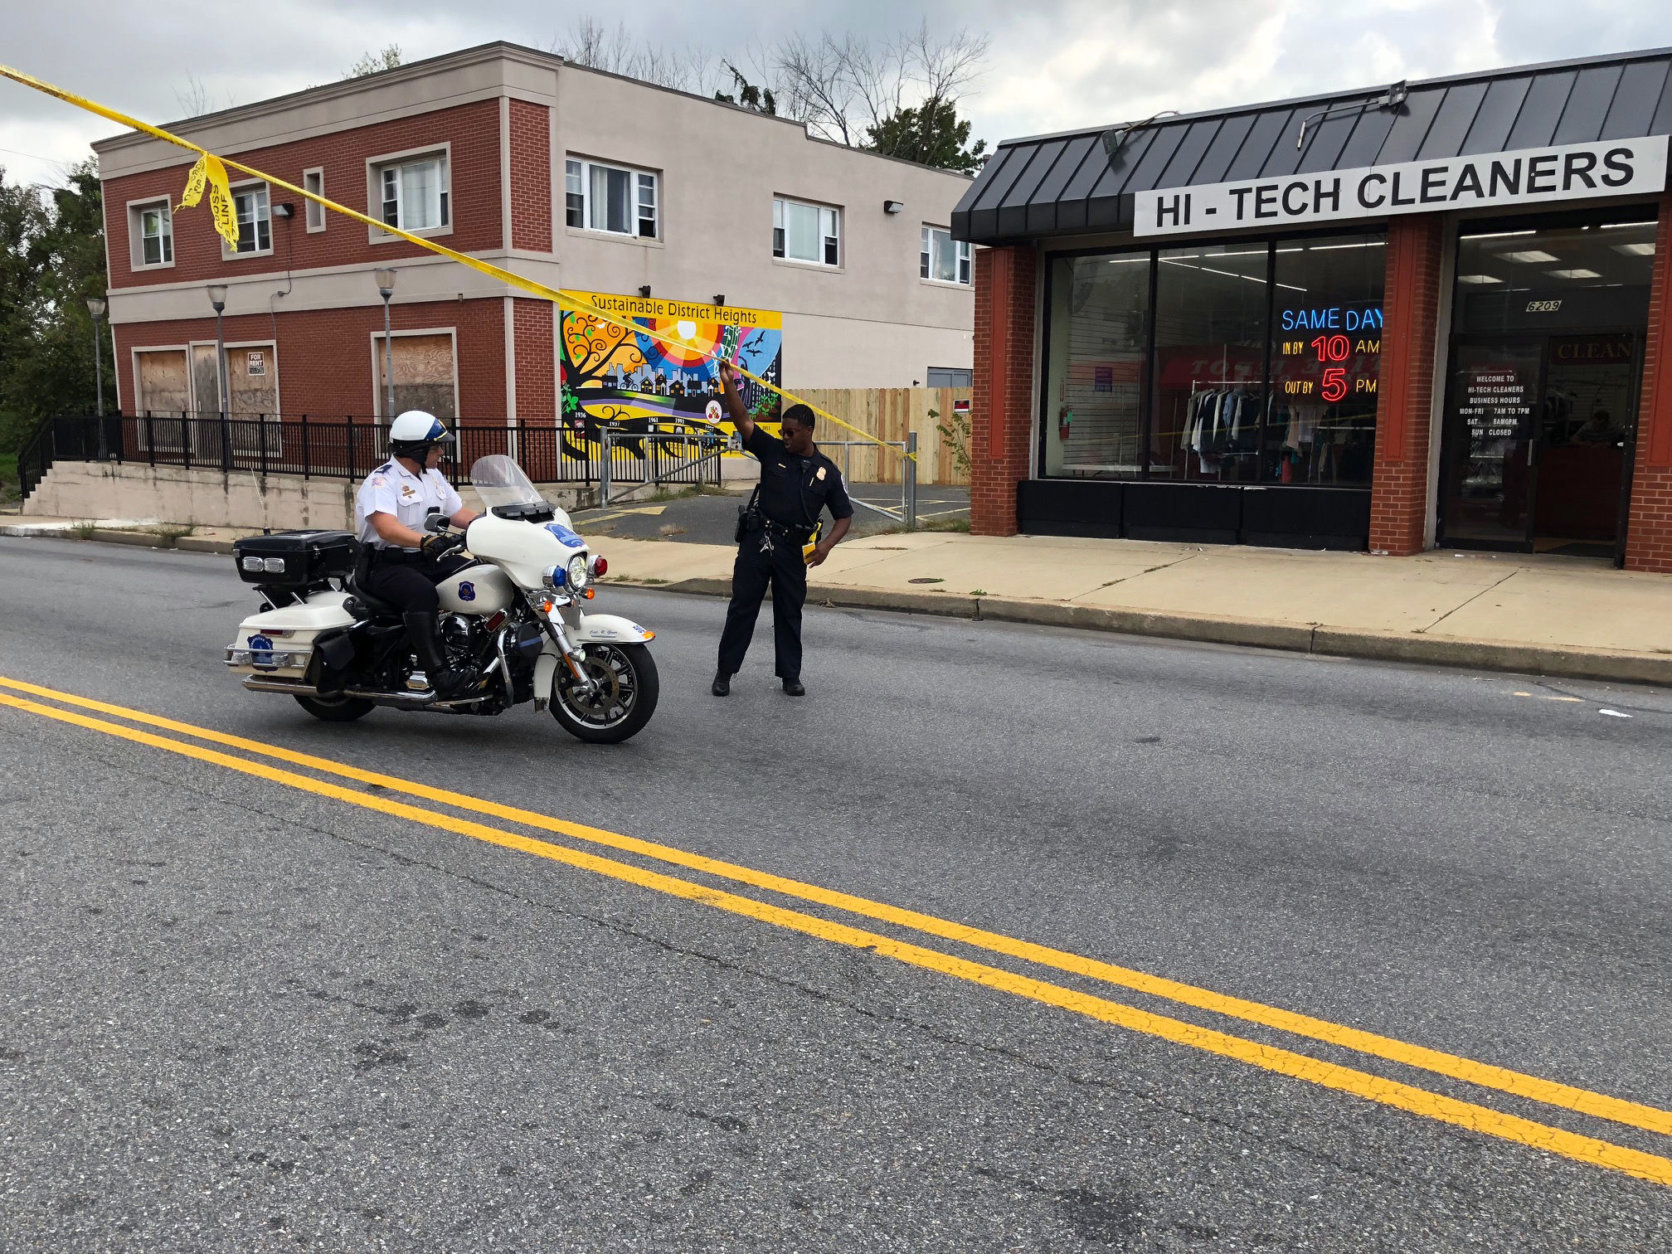 Police move through the area where Thodos was arrested along Marlboro Pike Tuesday. (WTOP/Kristi King)